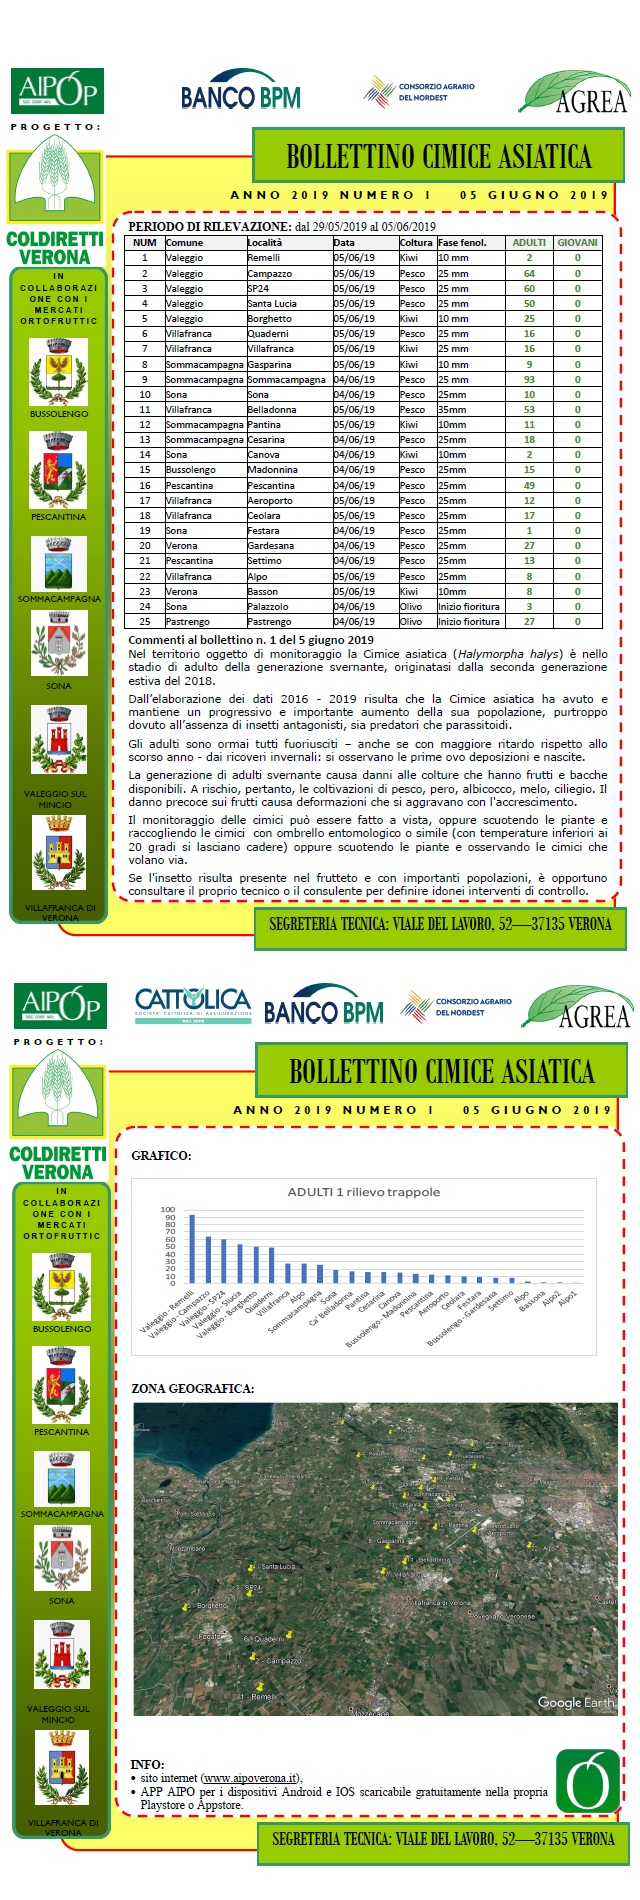 BOLLETTINO CIMICE ASIATICA N. 1 DEL 05/06/2019